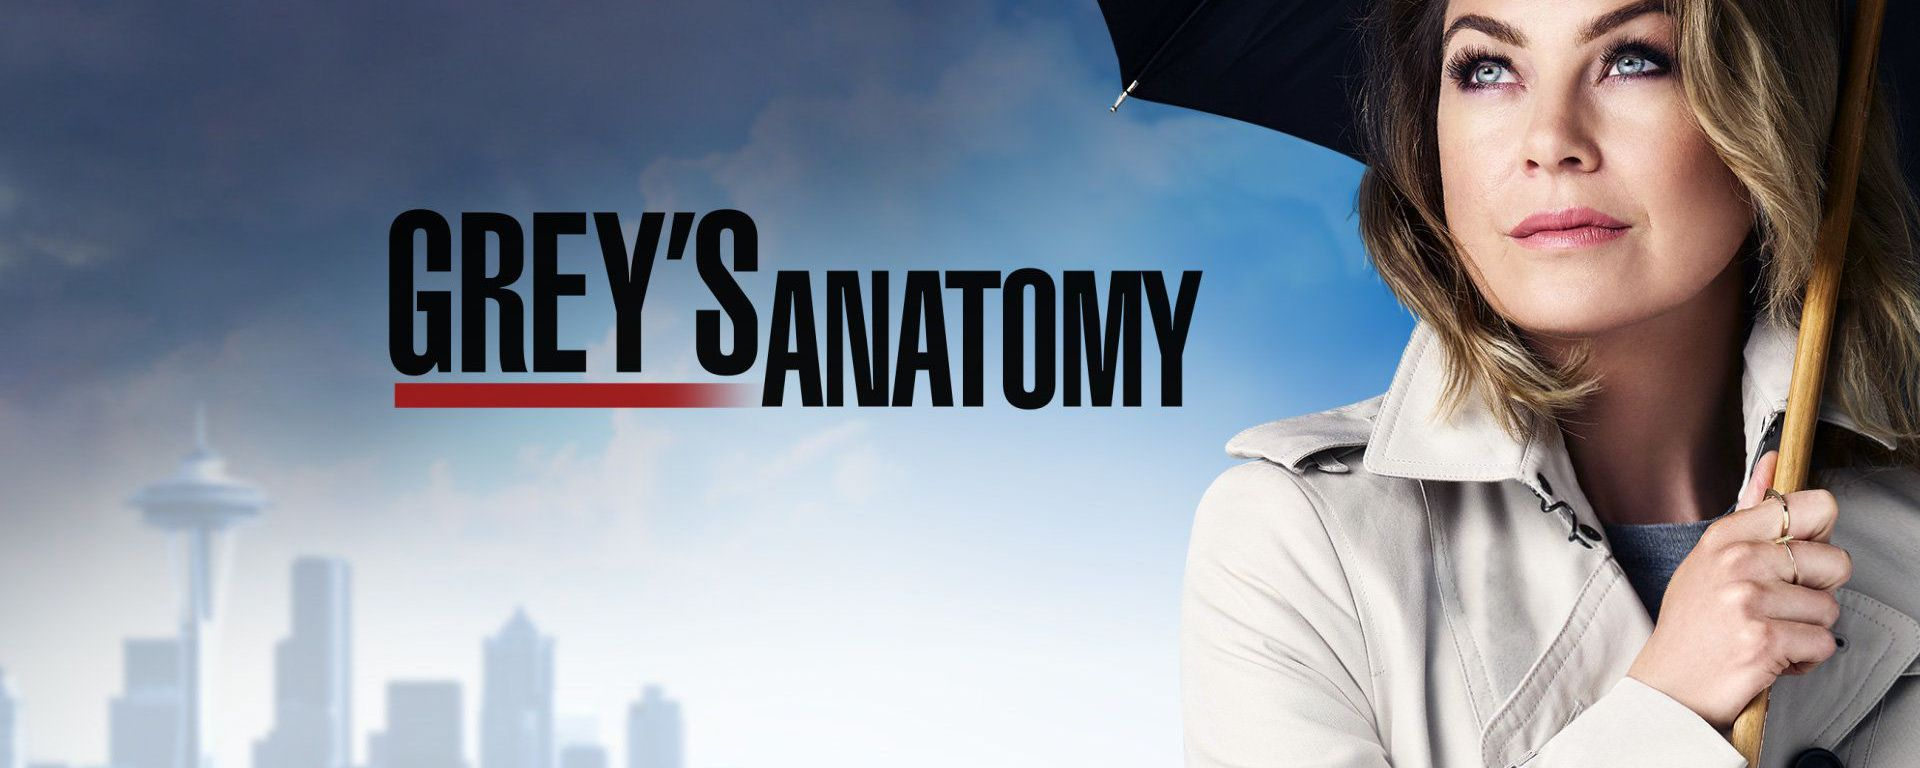 636095894350293088-726168424_greys-anatomy-wallpaper